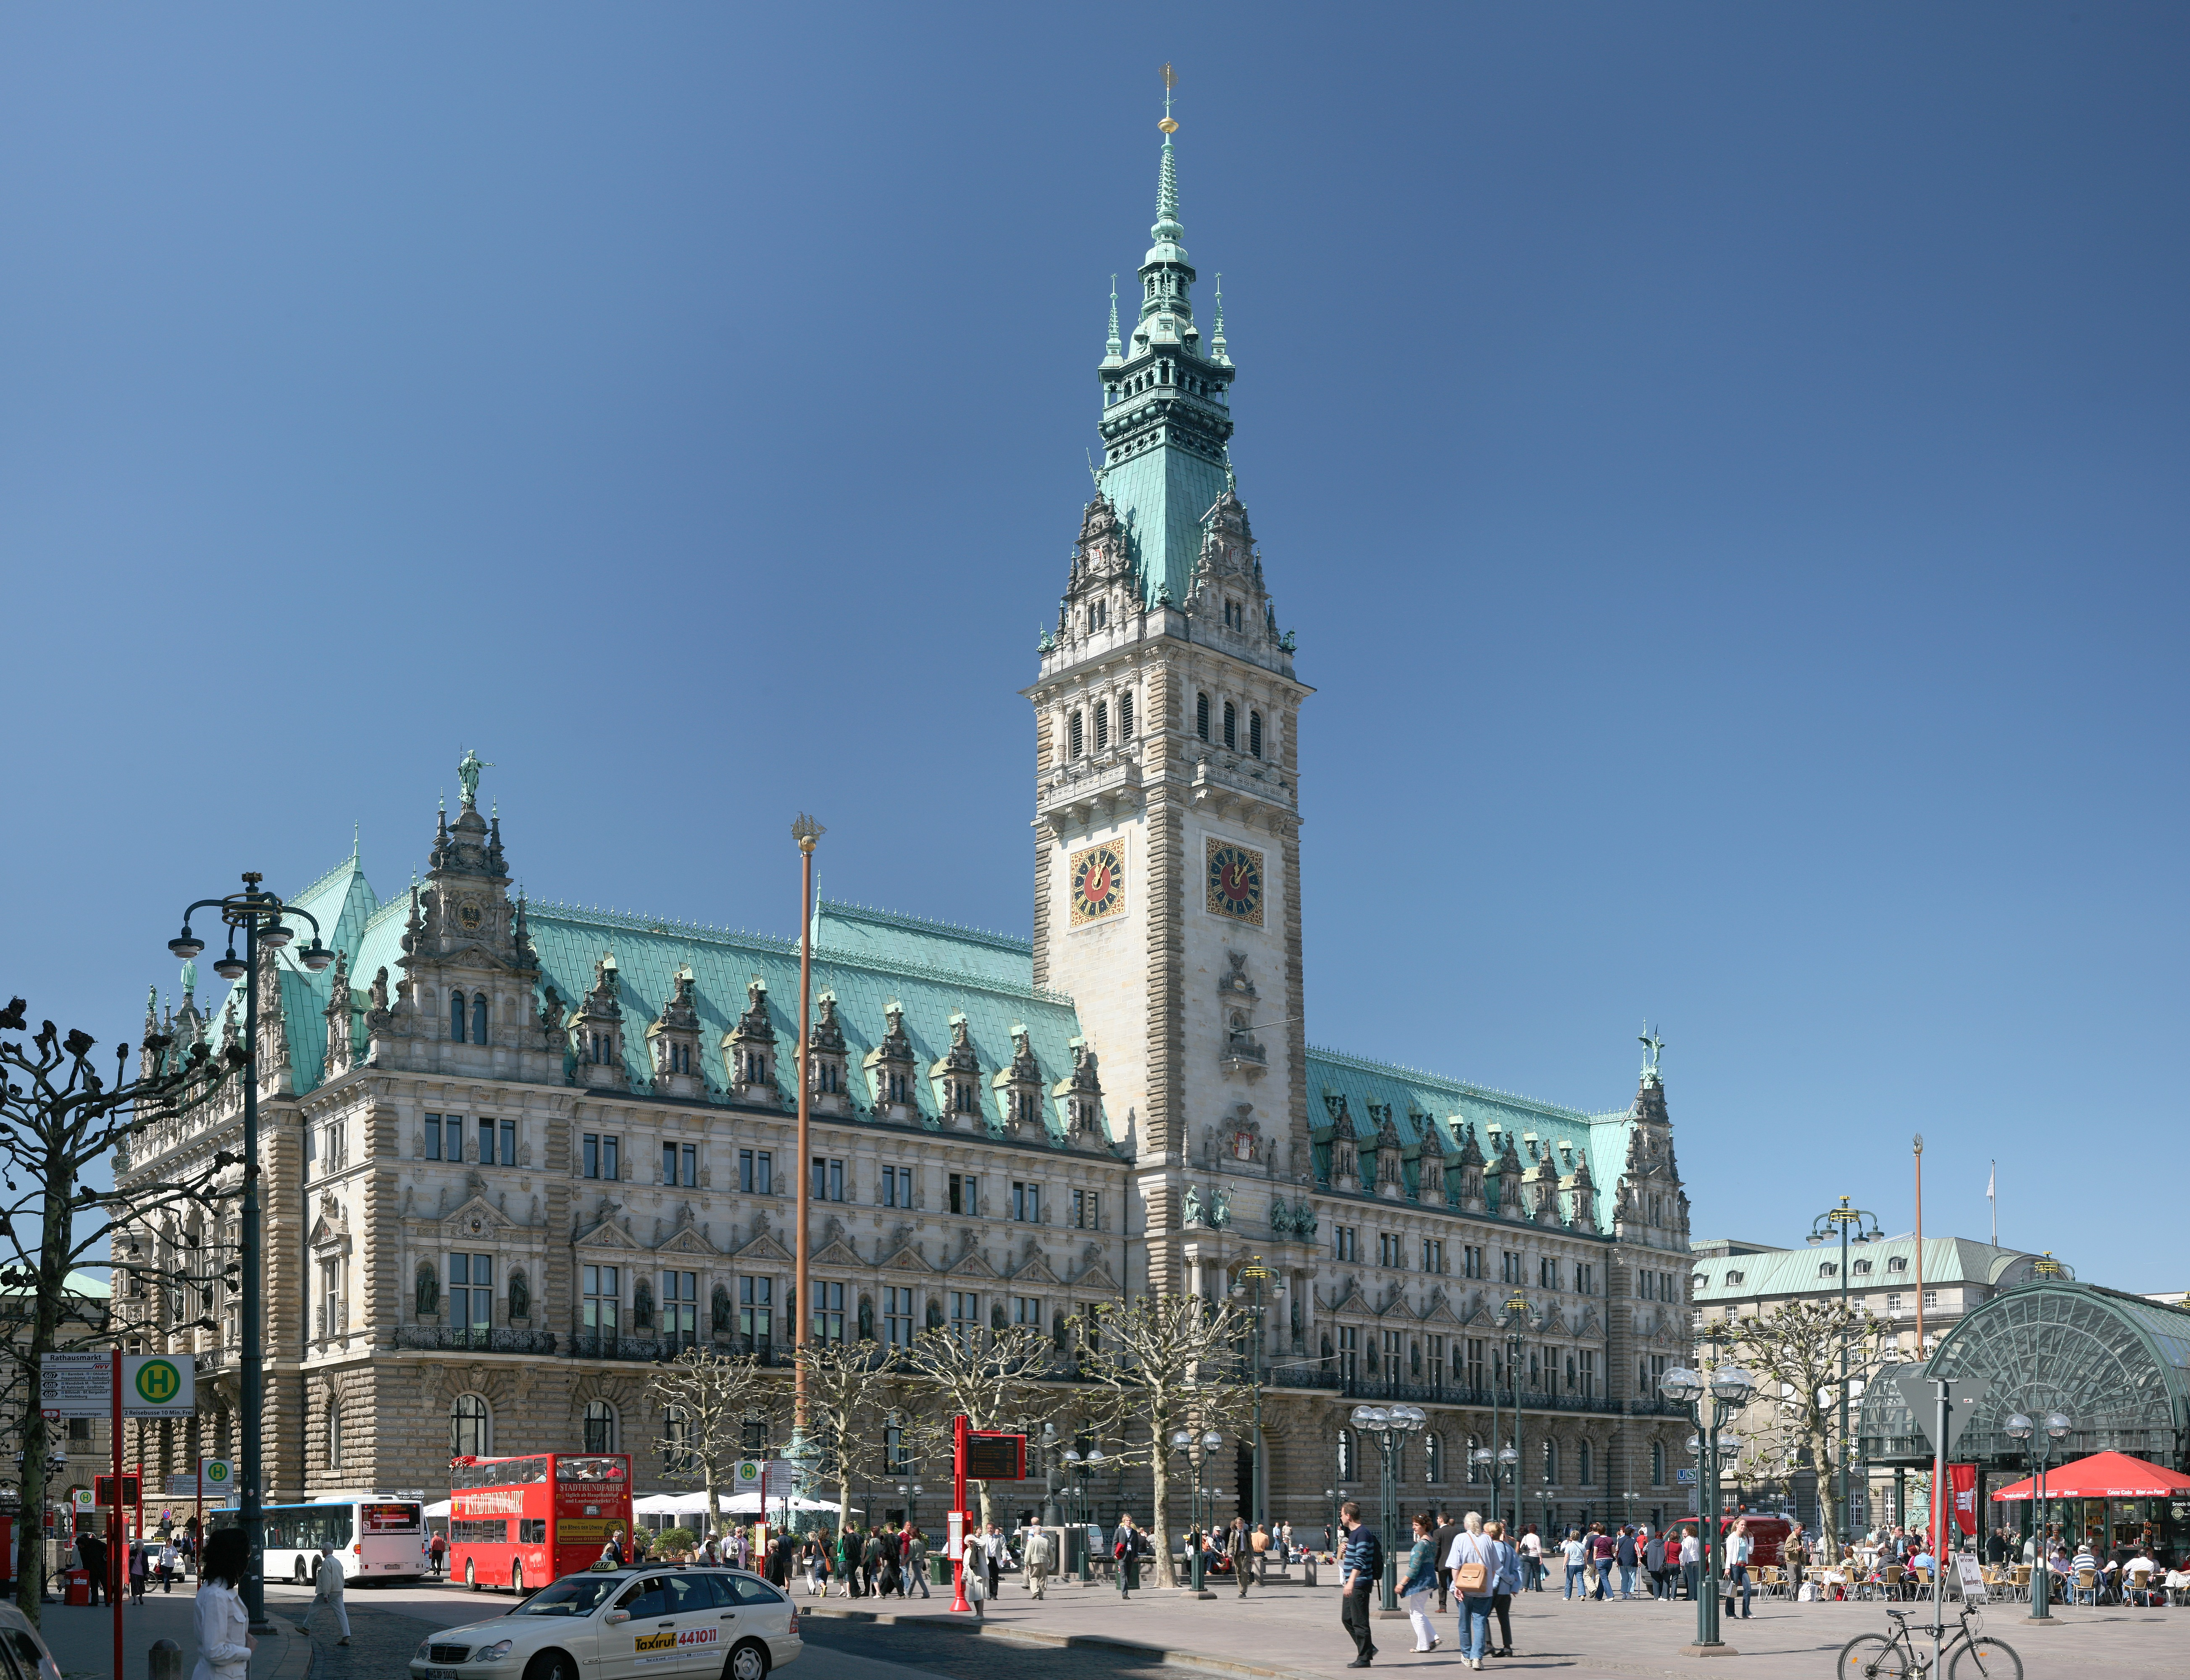 The city of Hamburg was forced to lower its environmental standards because of ISDS.